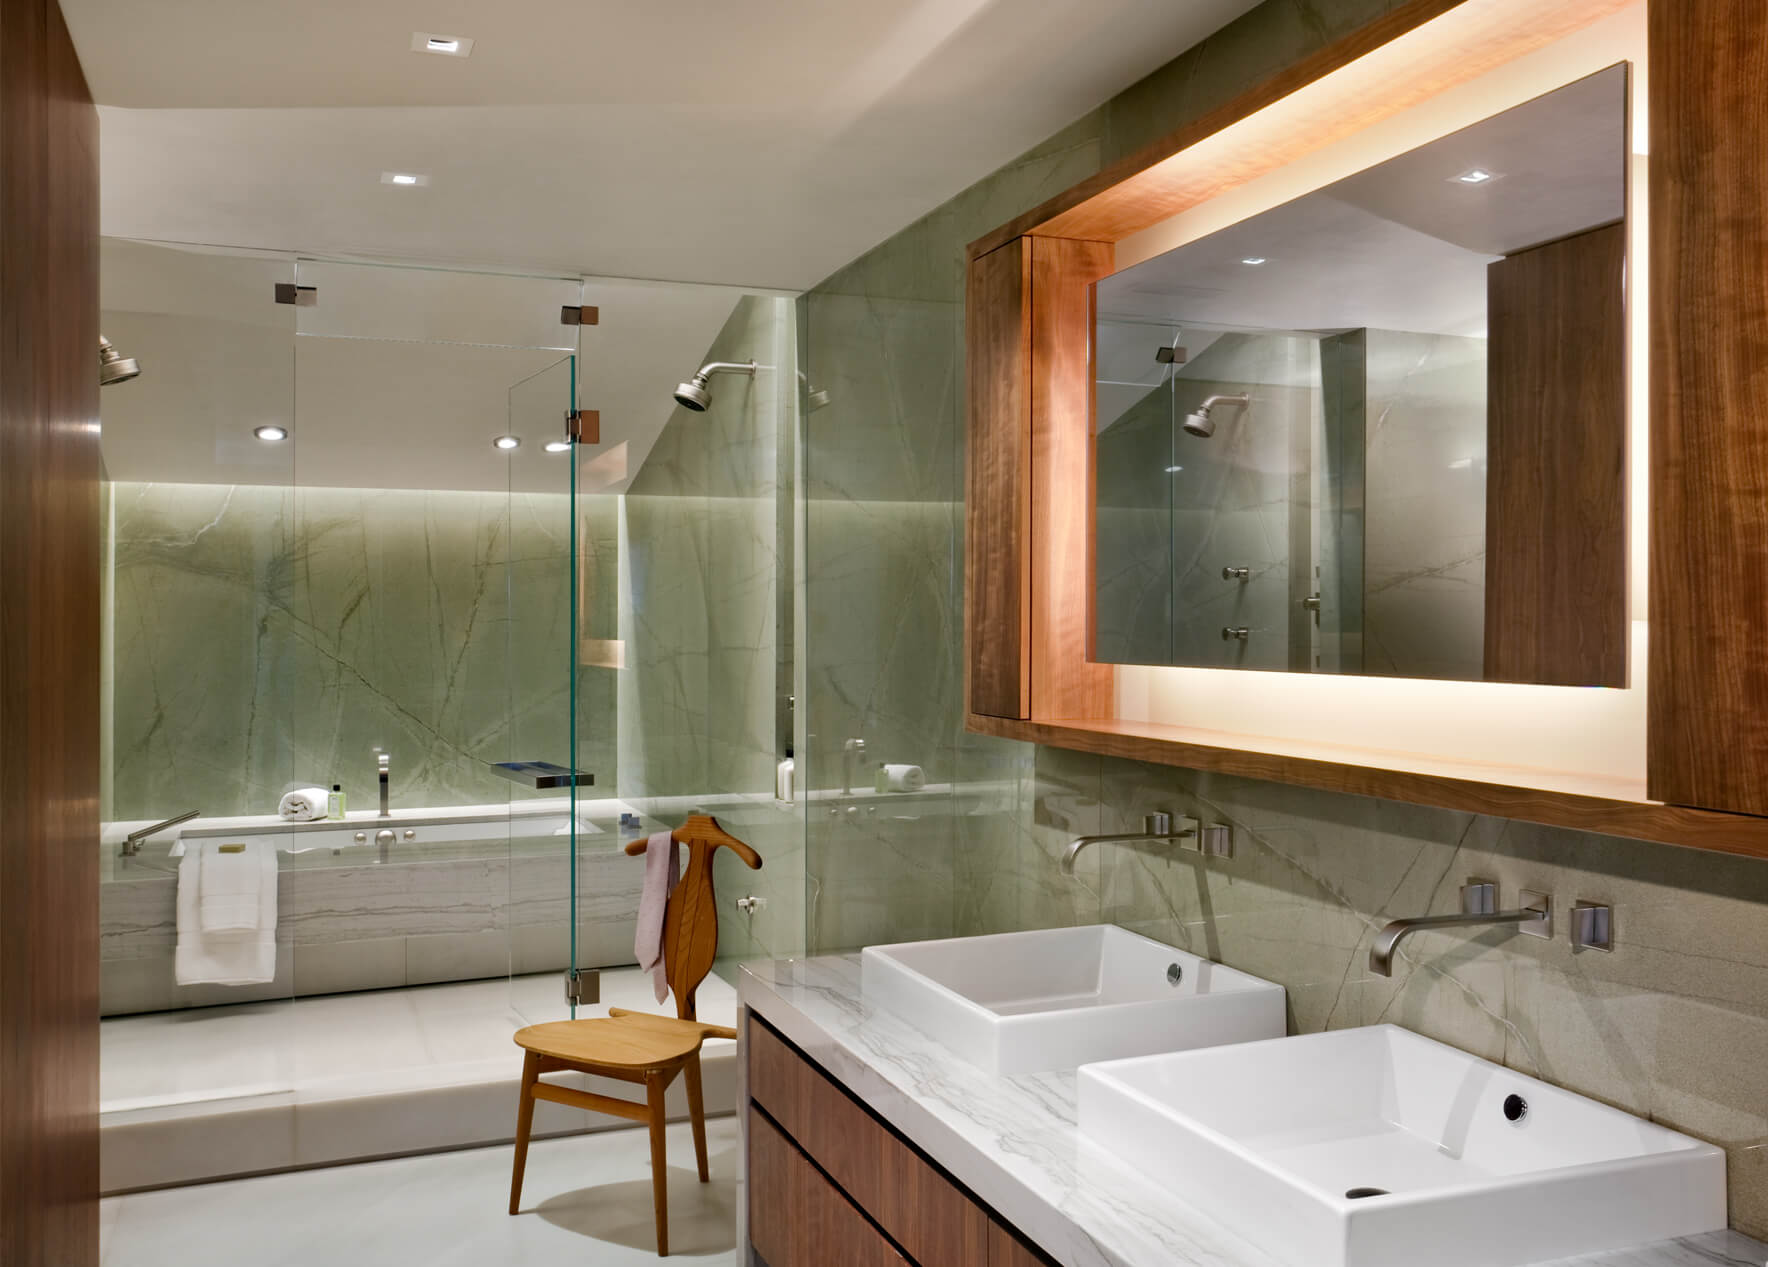 West village townhouse dhd architecture interior design for Townhouse bathroom designs